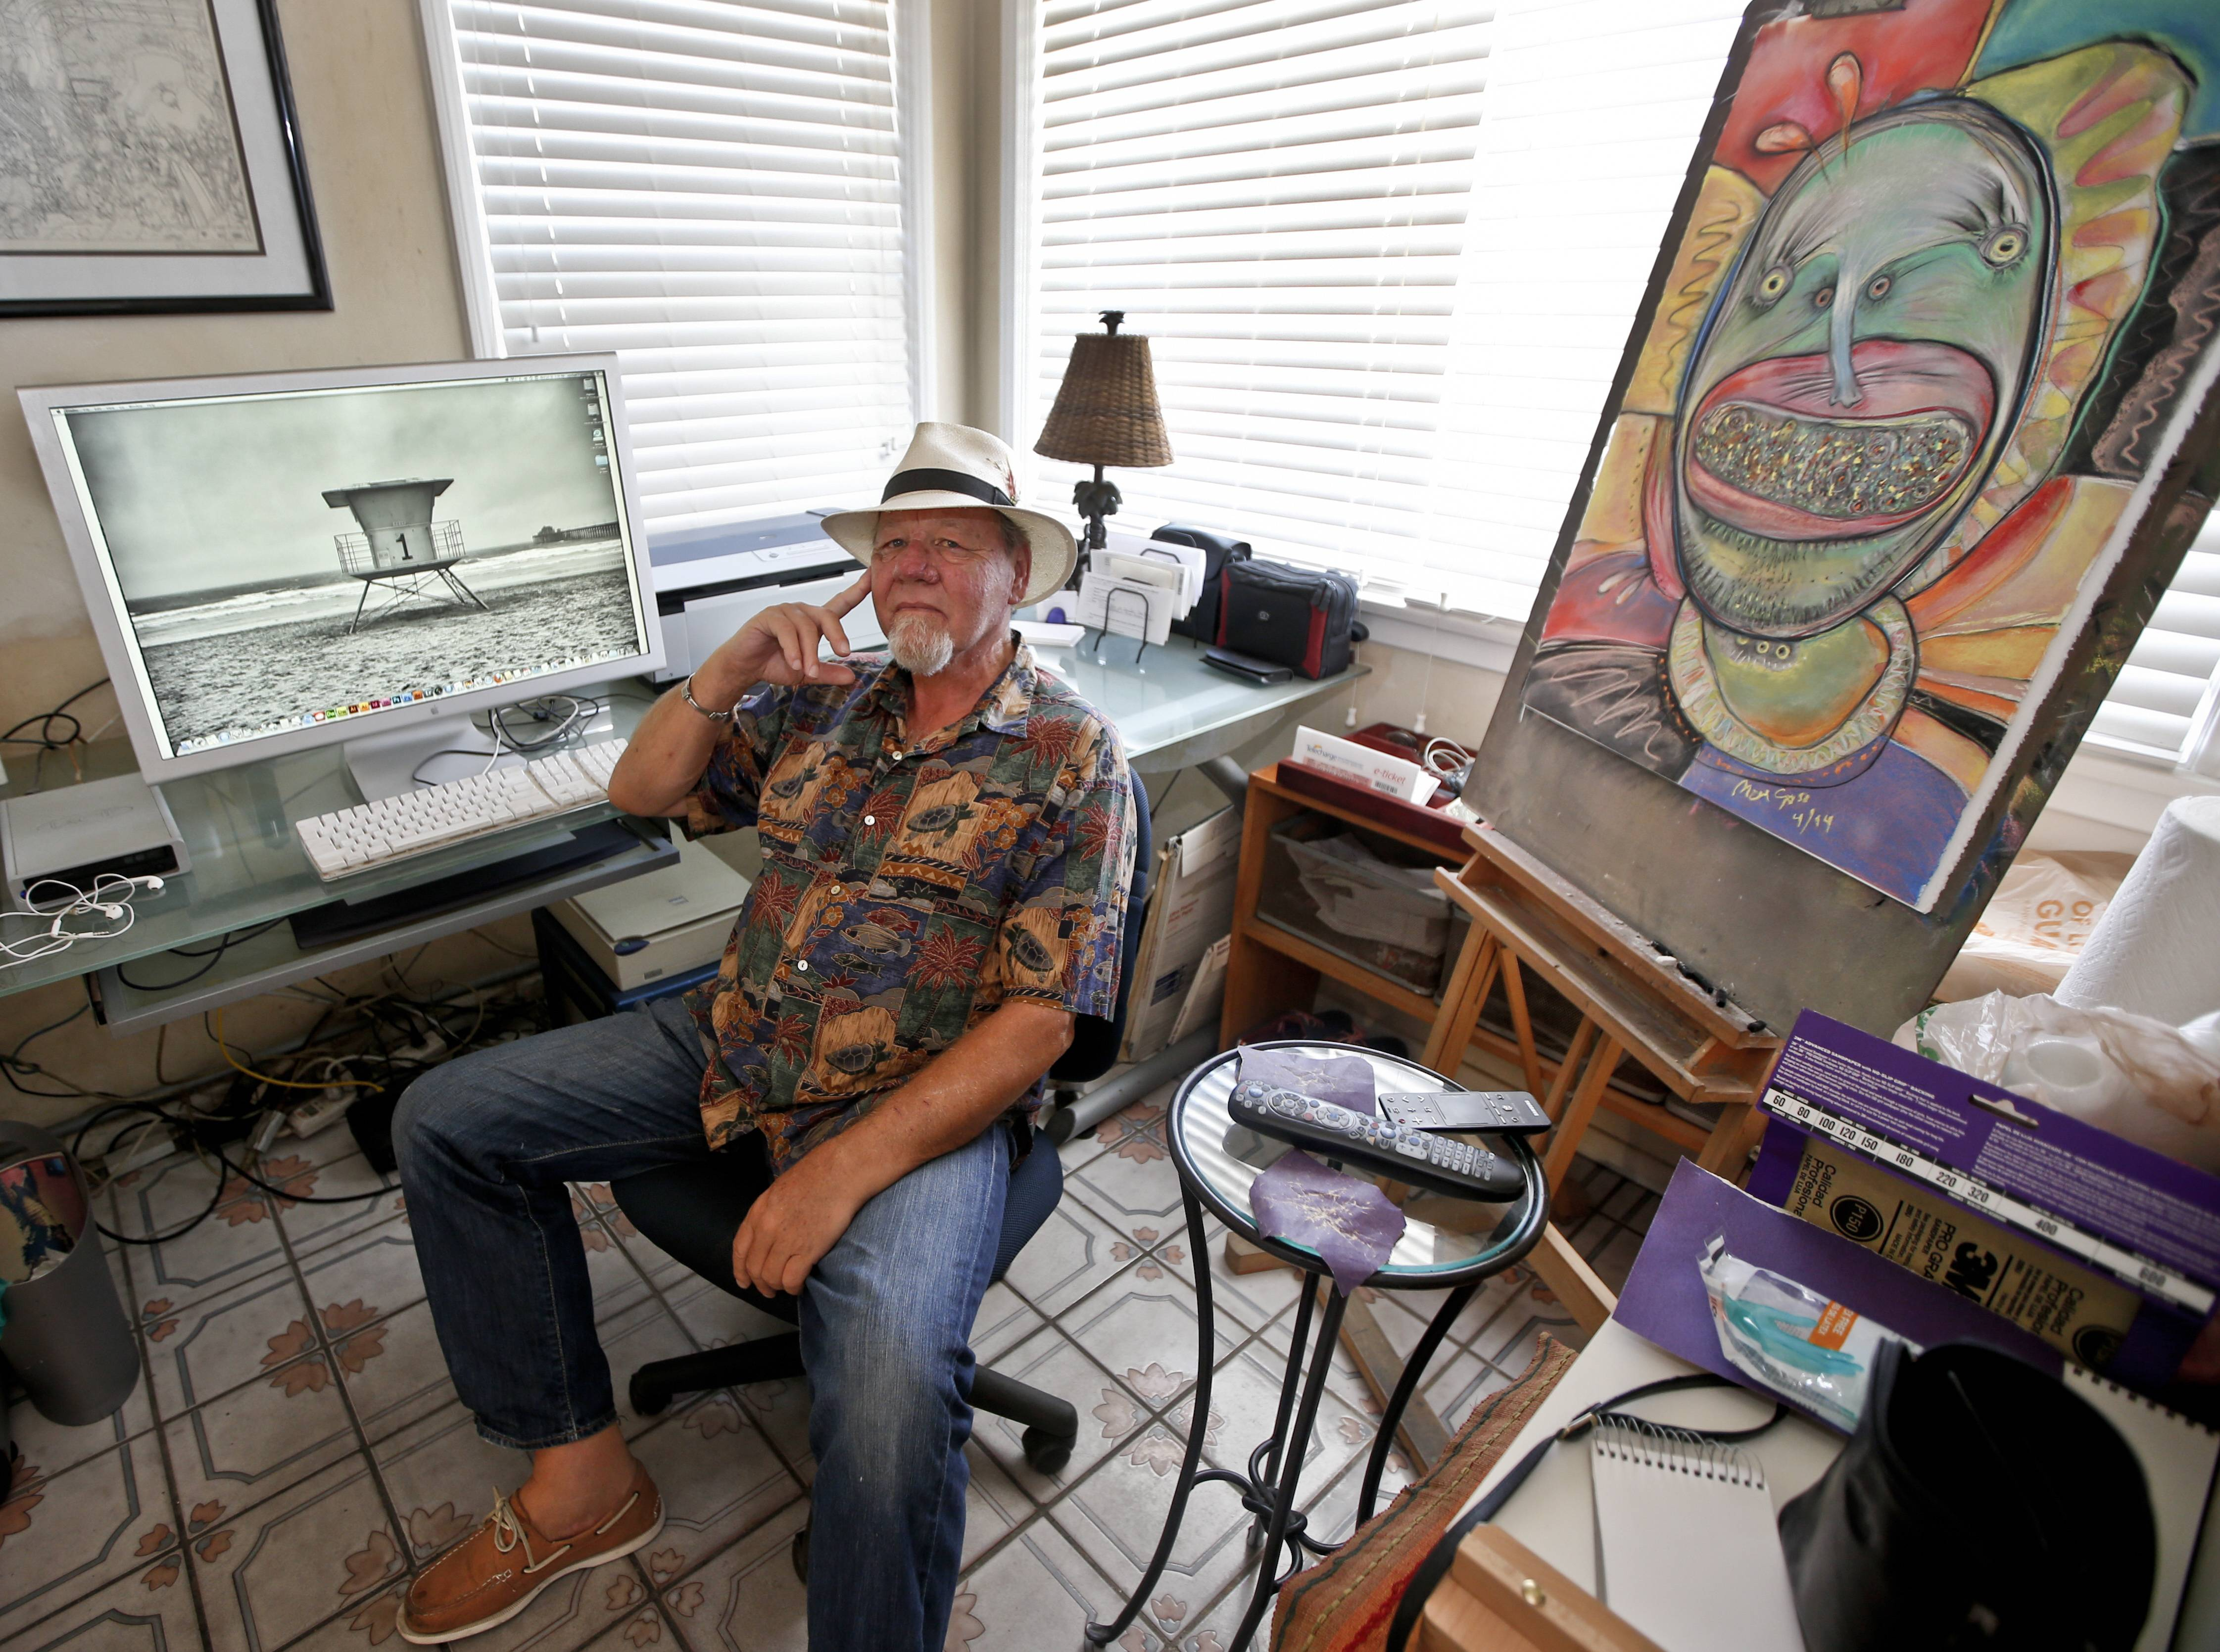 Artist Michael Gross, who is battling cancer, has decided to use his and the work of other artists to raise money in his fight against cancer.